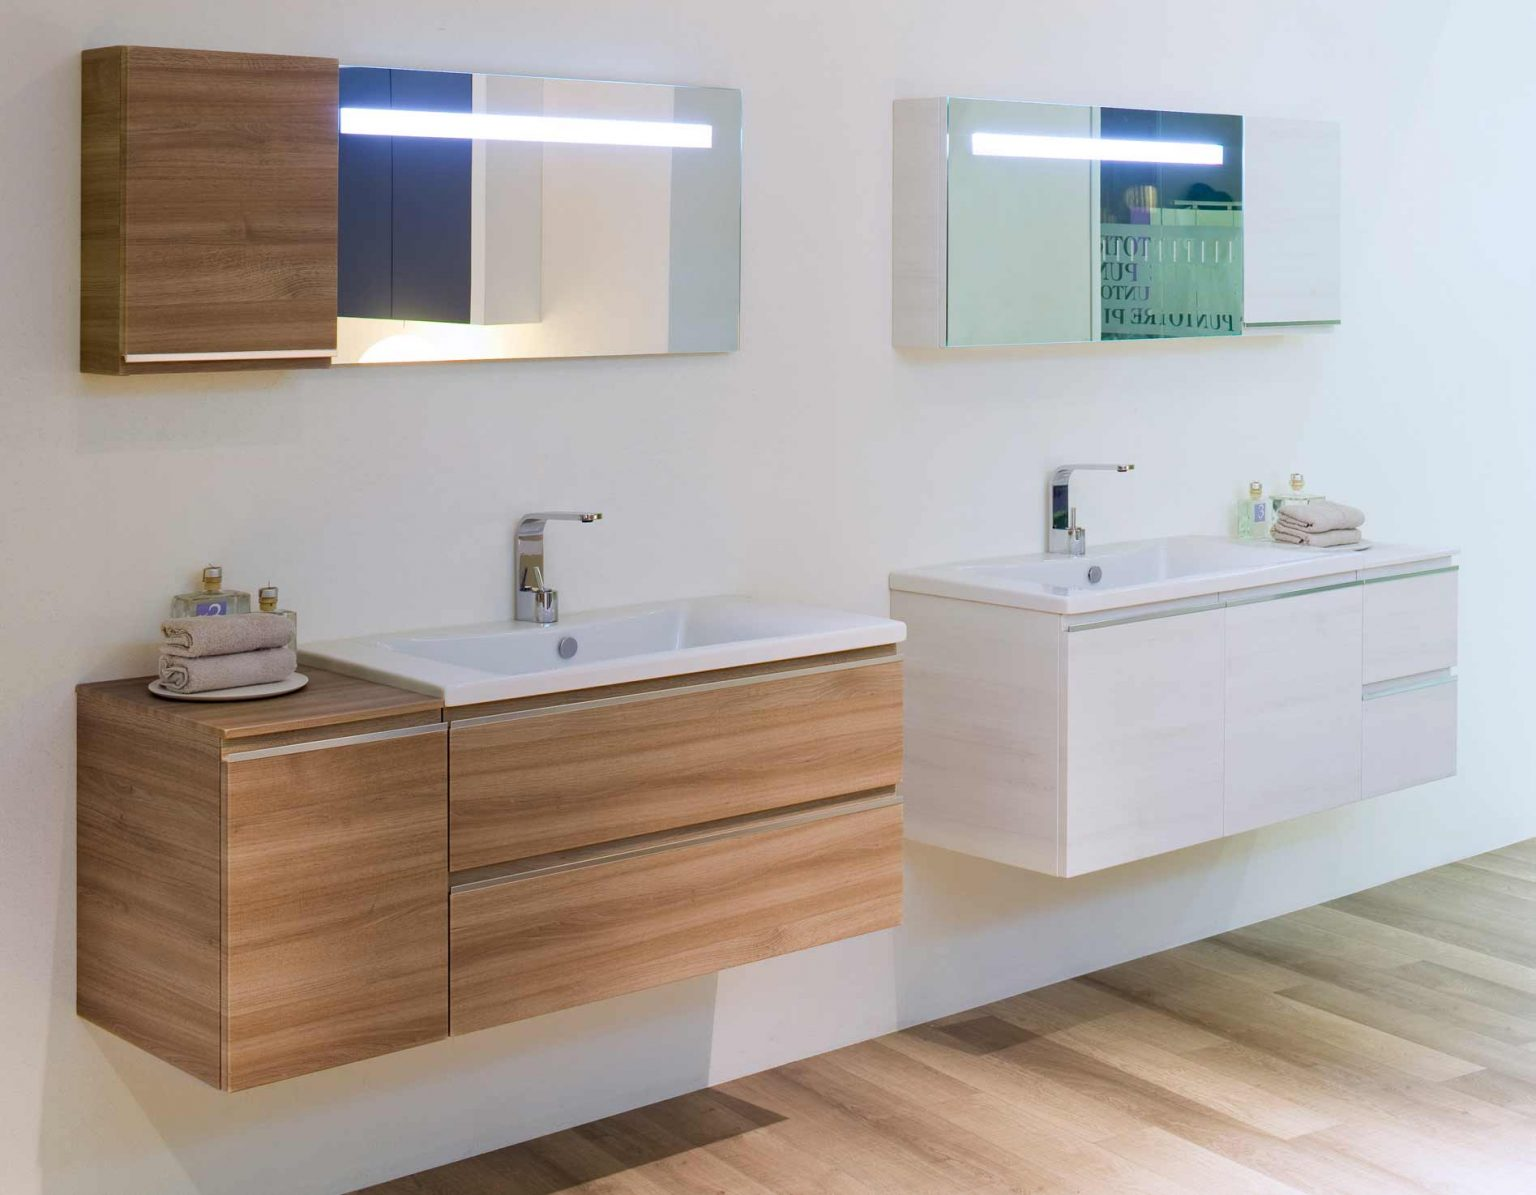 Modular bathroom forniture Mistral by BLOB: new modularity and finishes